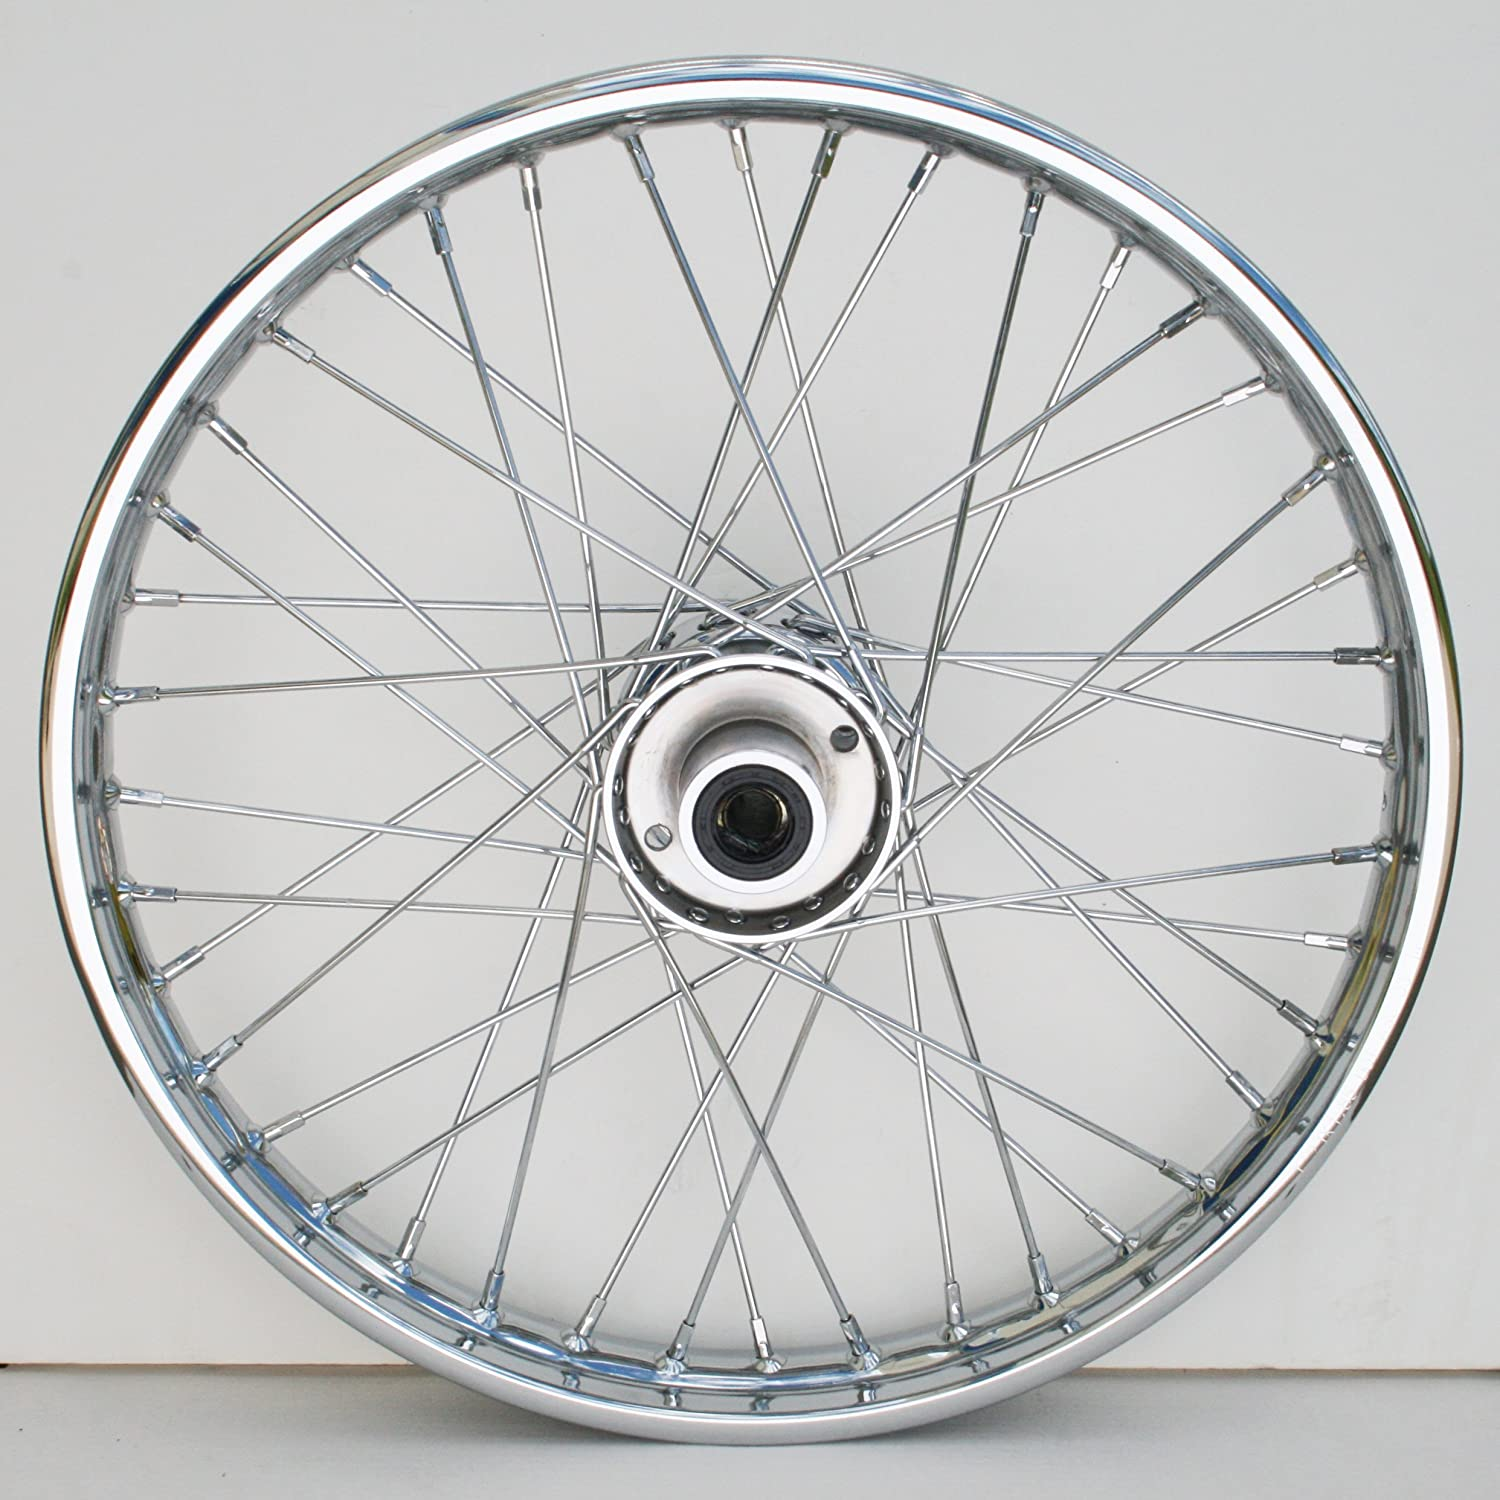 36-370 Ultima Complete Chrome 40 Spoke Front Wheel 19 x 2.50 2000 /& Later Models Single or Dual Disc